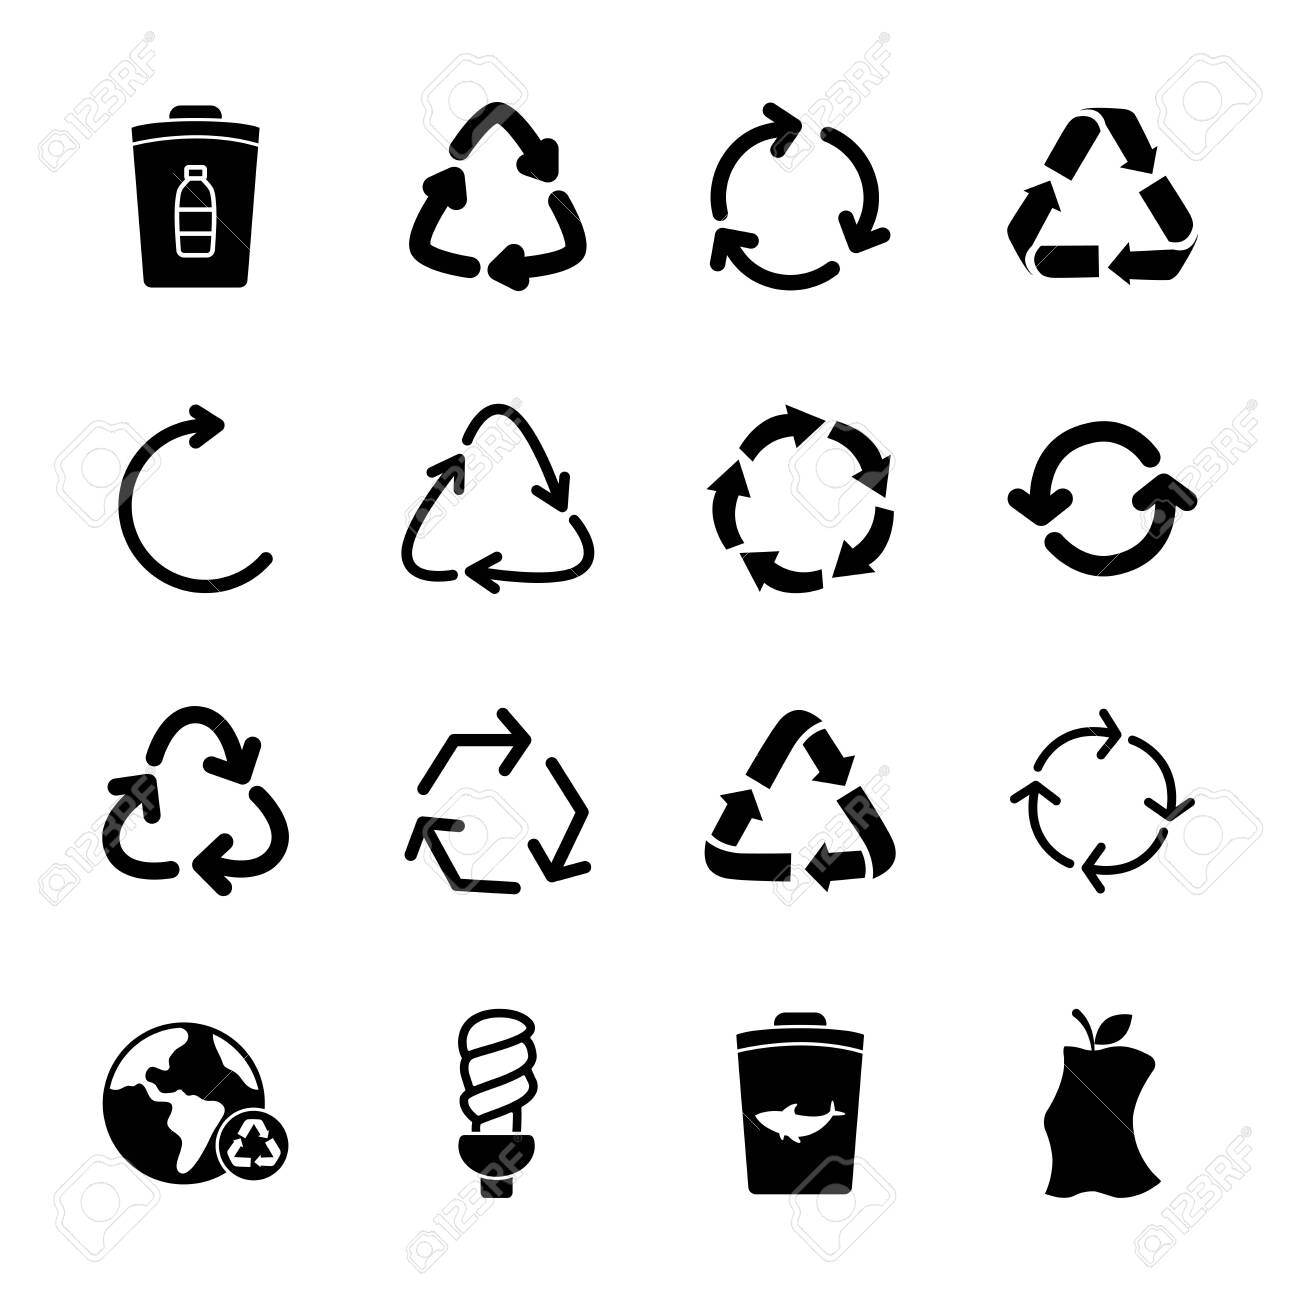 trash can and recycle icon set over white background, silhouette style, vector illustration - 150919620